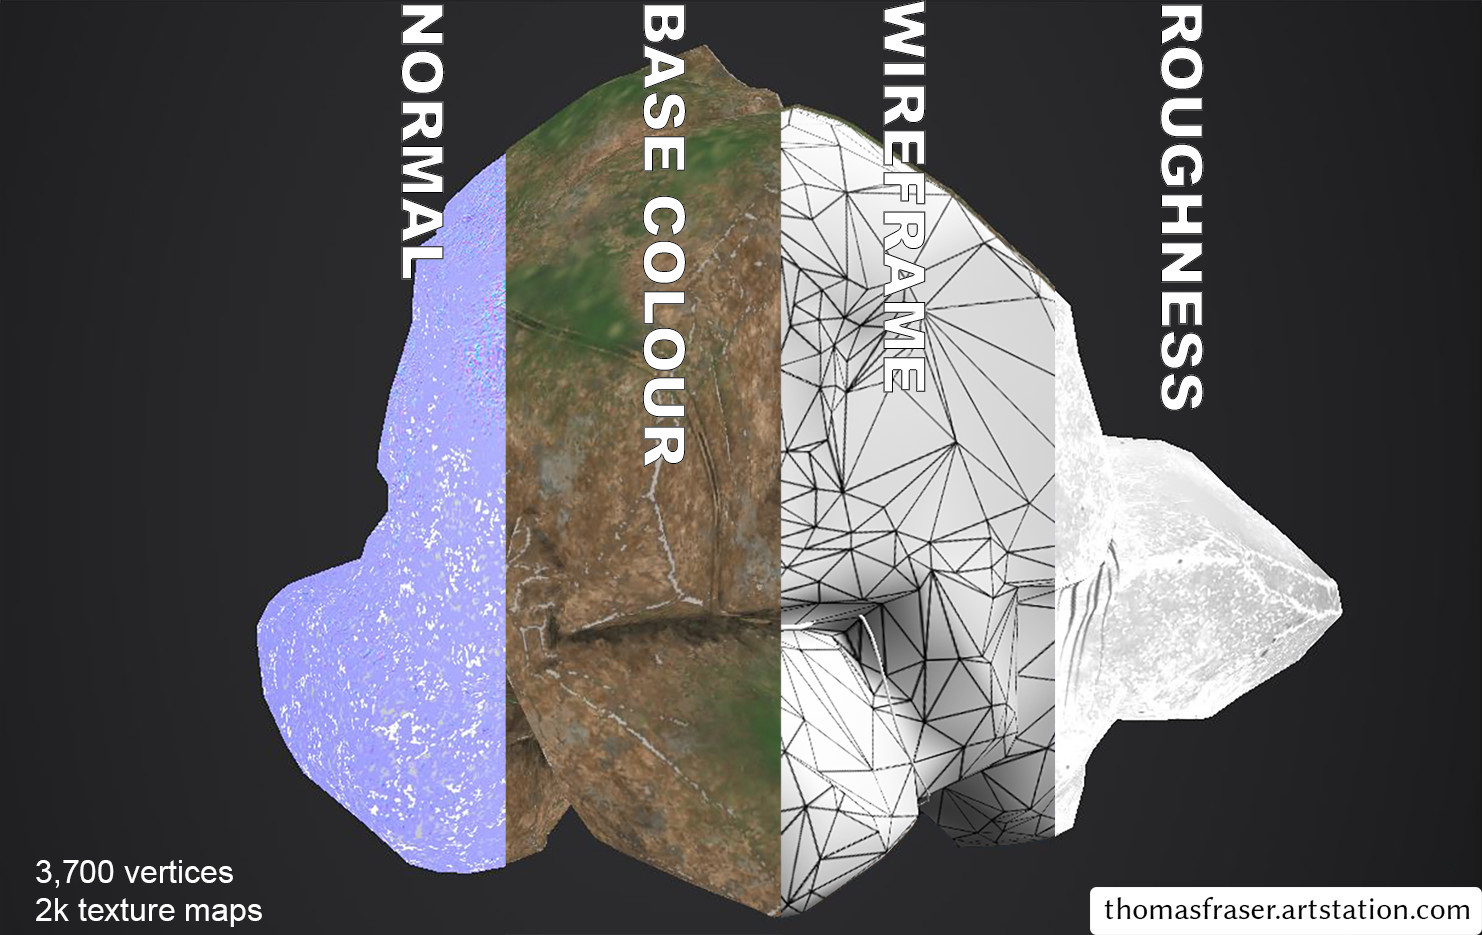 Vines and a boulder mesh with the different maps.